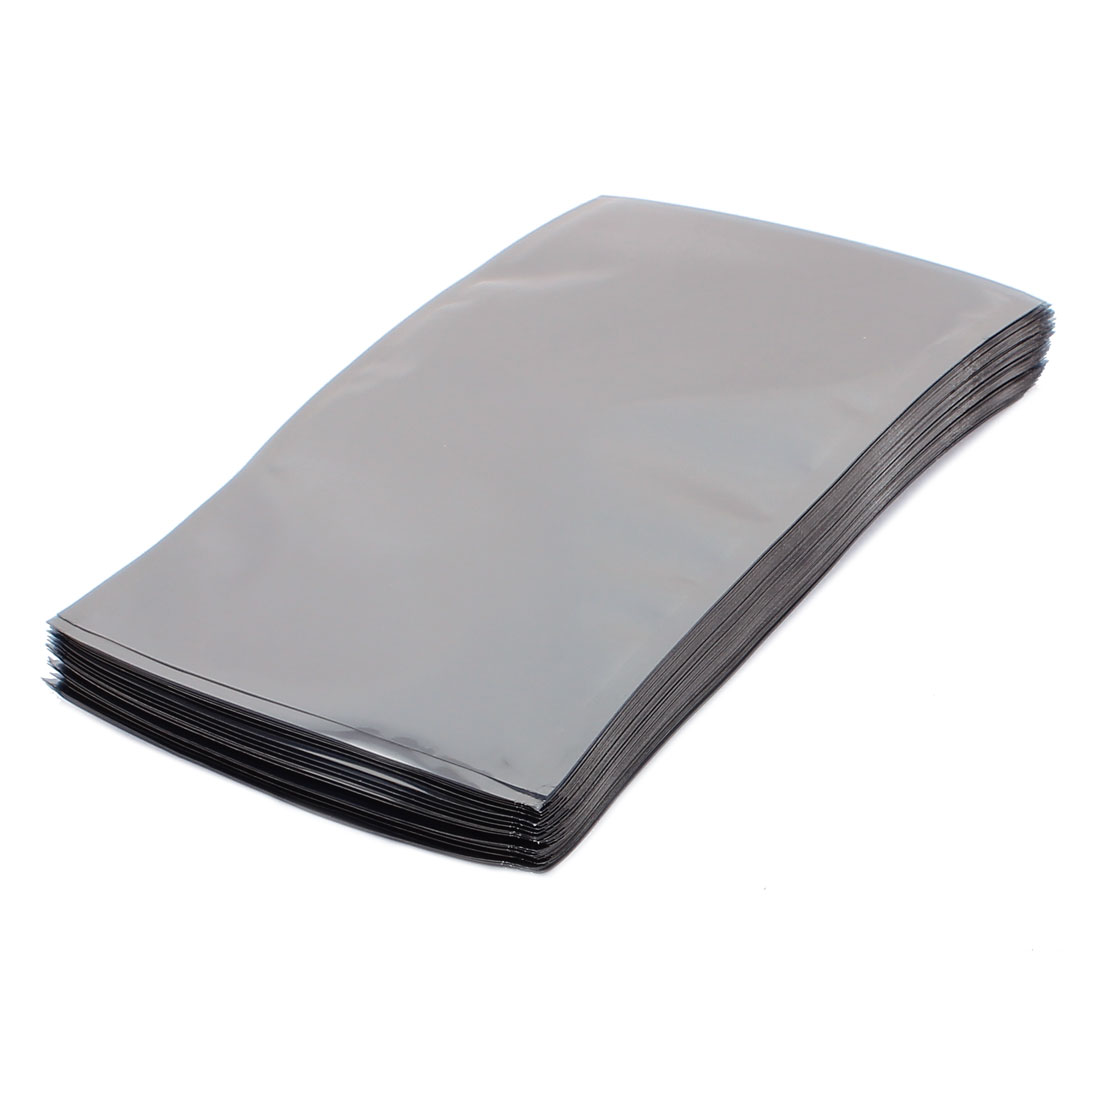 100 Pcs 110mm x 180mm Silver Tone Flat Open Top Anti Static Bag For Electronics